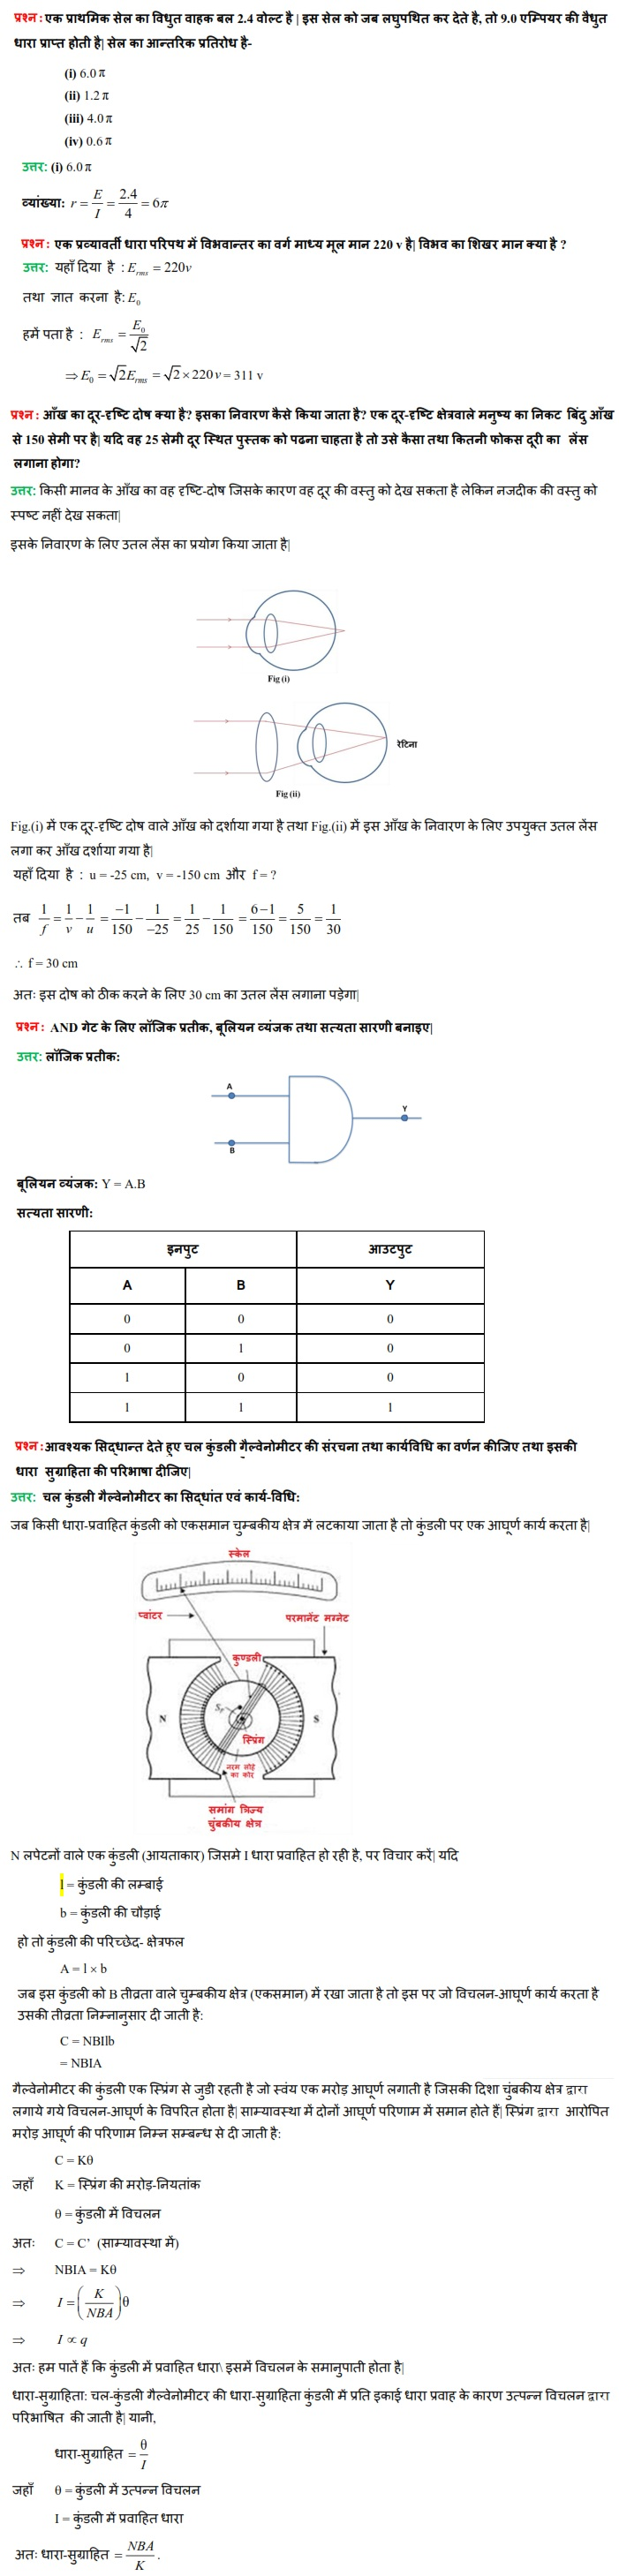 Up board class 12th physics ii solved question paper 2014 up board class 12th physics second solved question paper set 1 2014 malvernweather Image collections